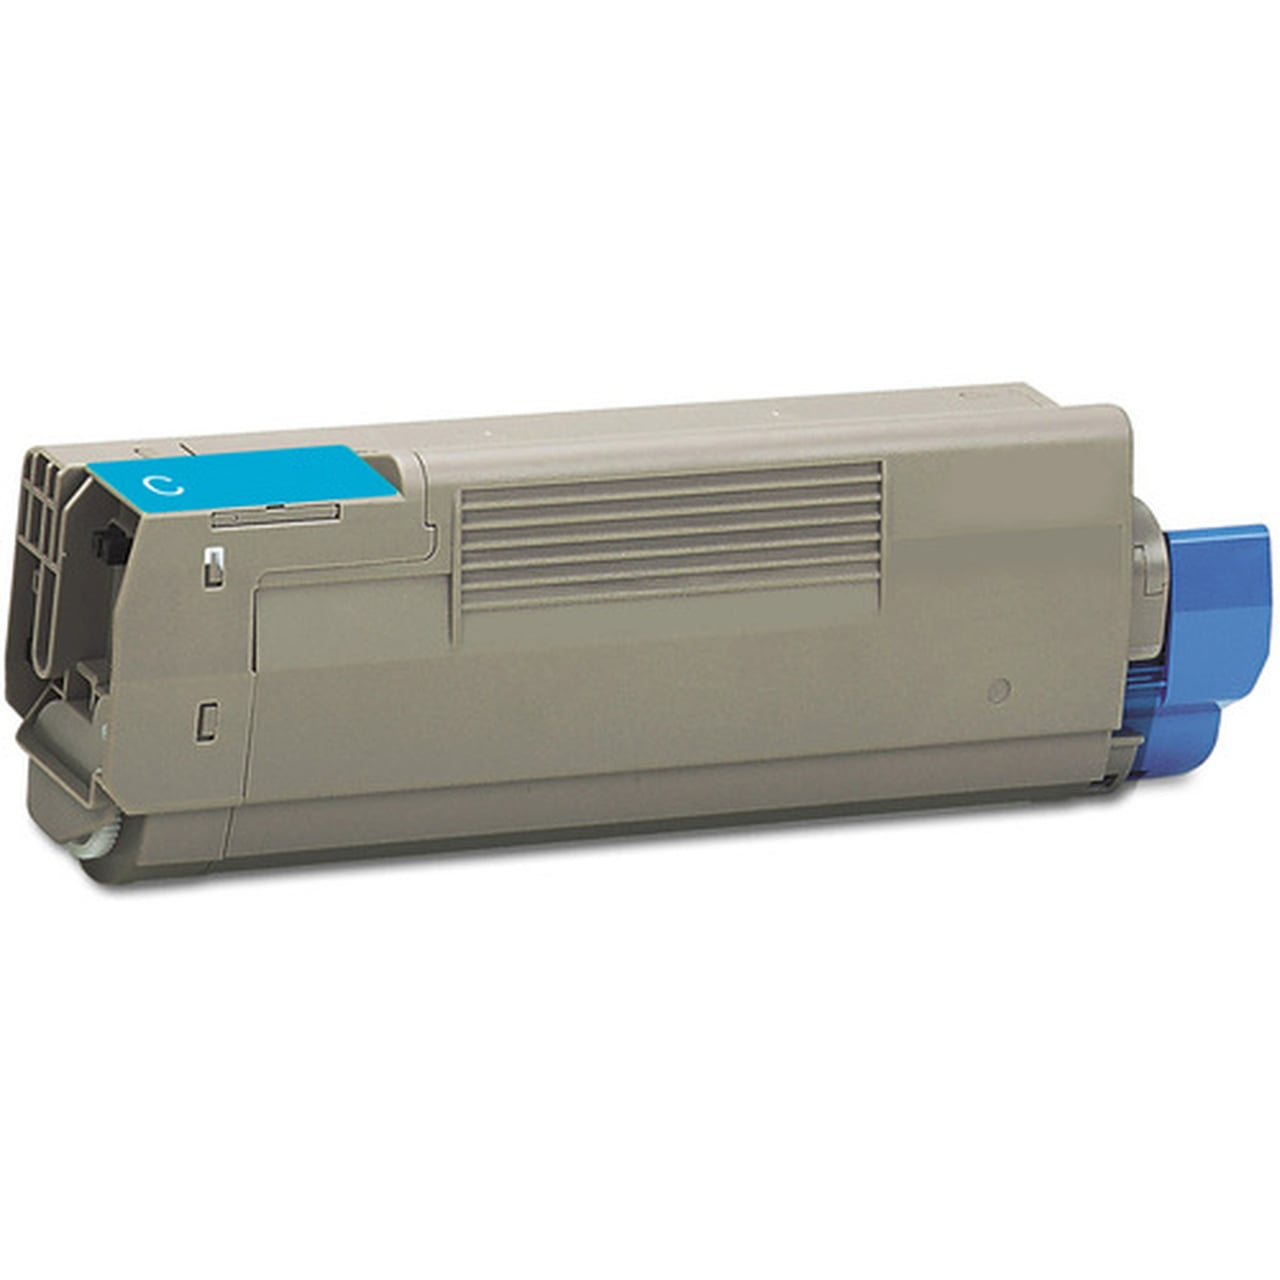 43324419 Toner Cartridge - Okidata New Compatible  (Cyan)